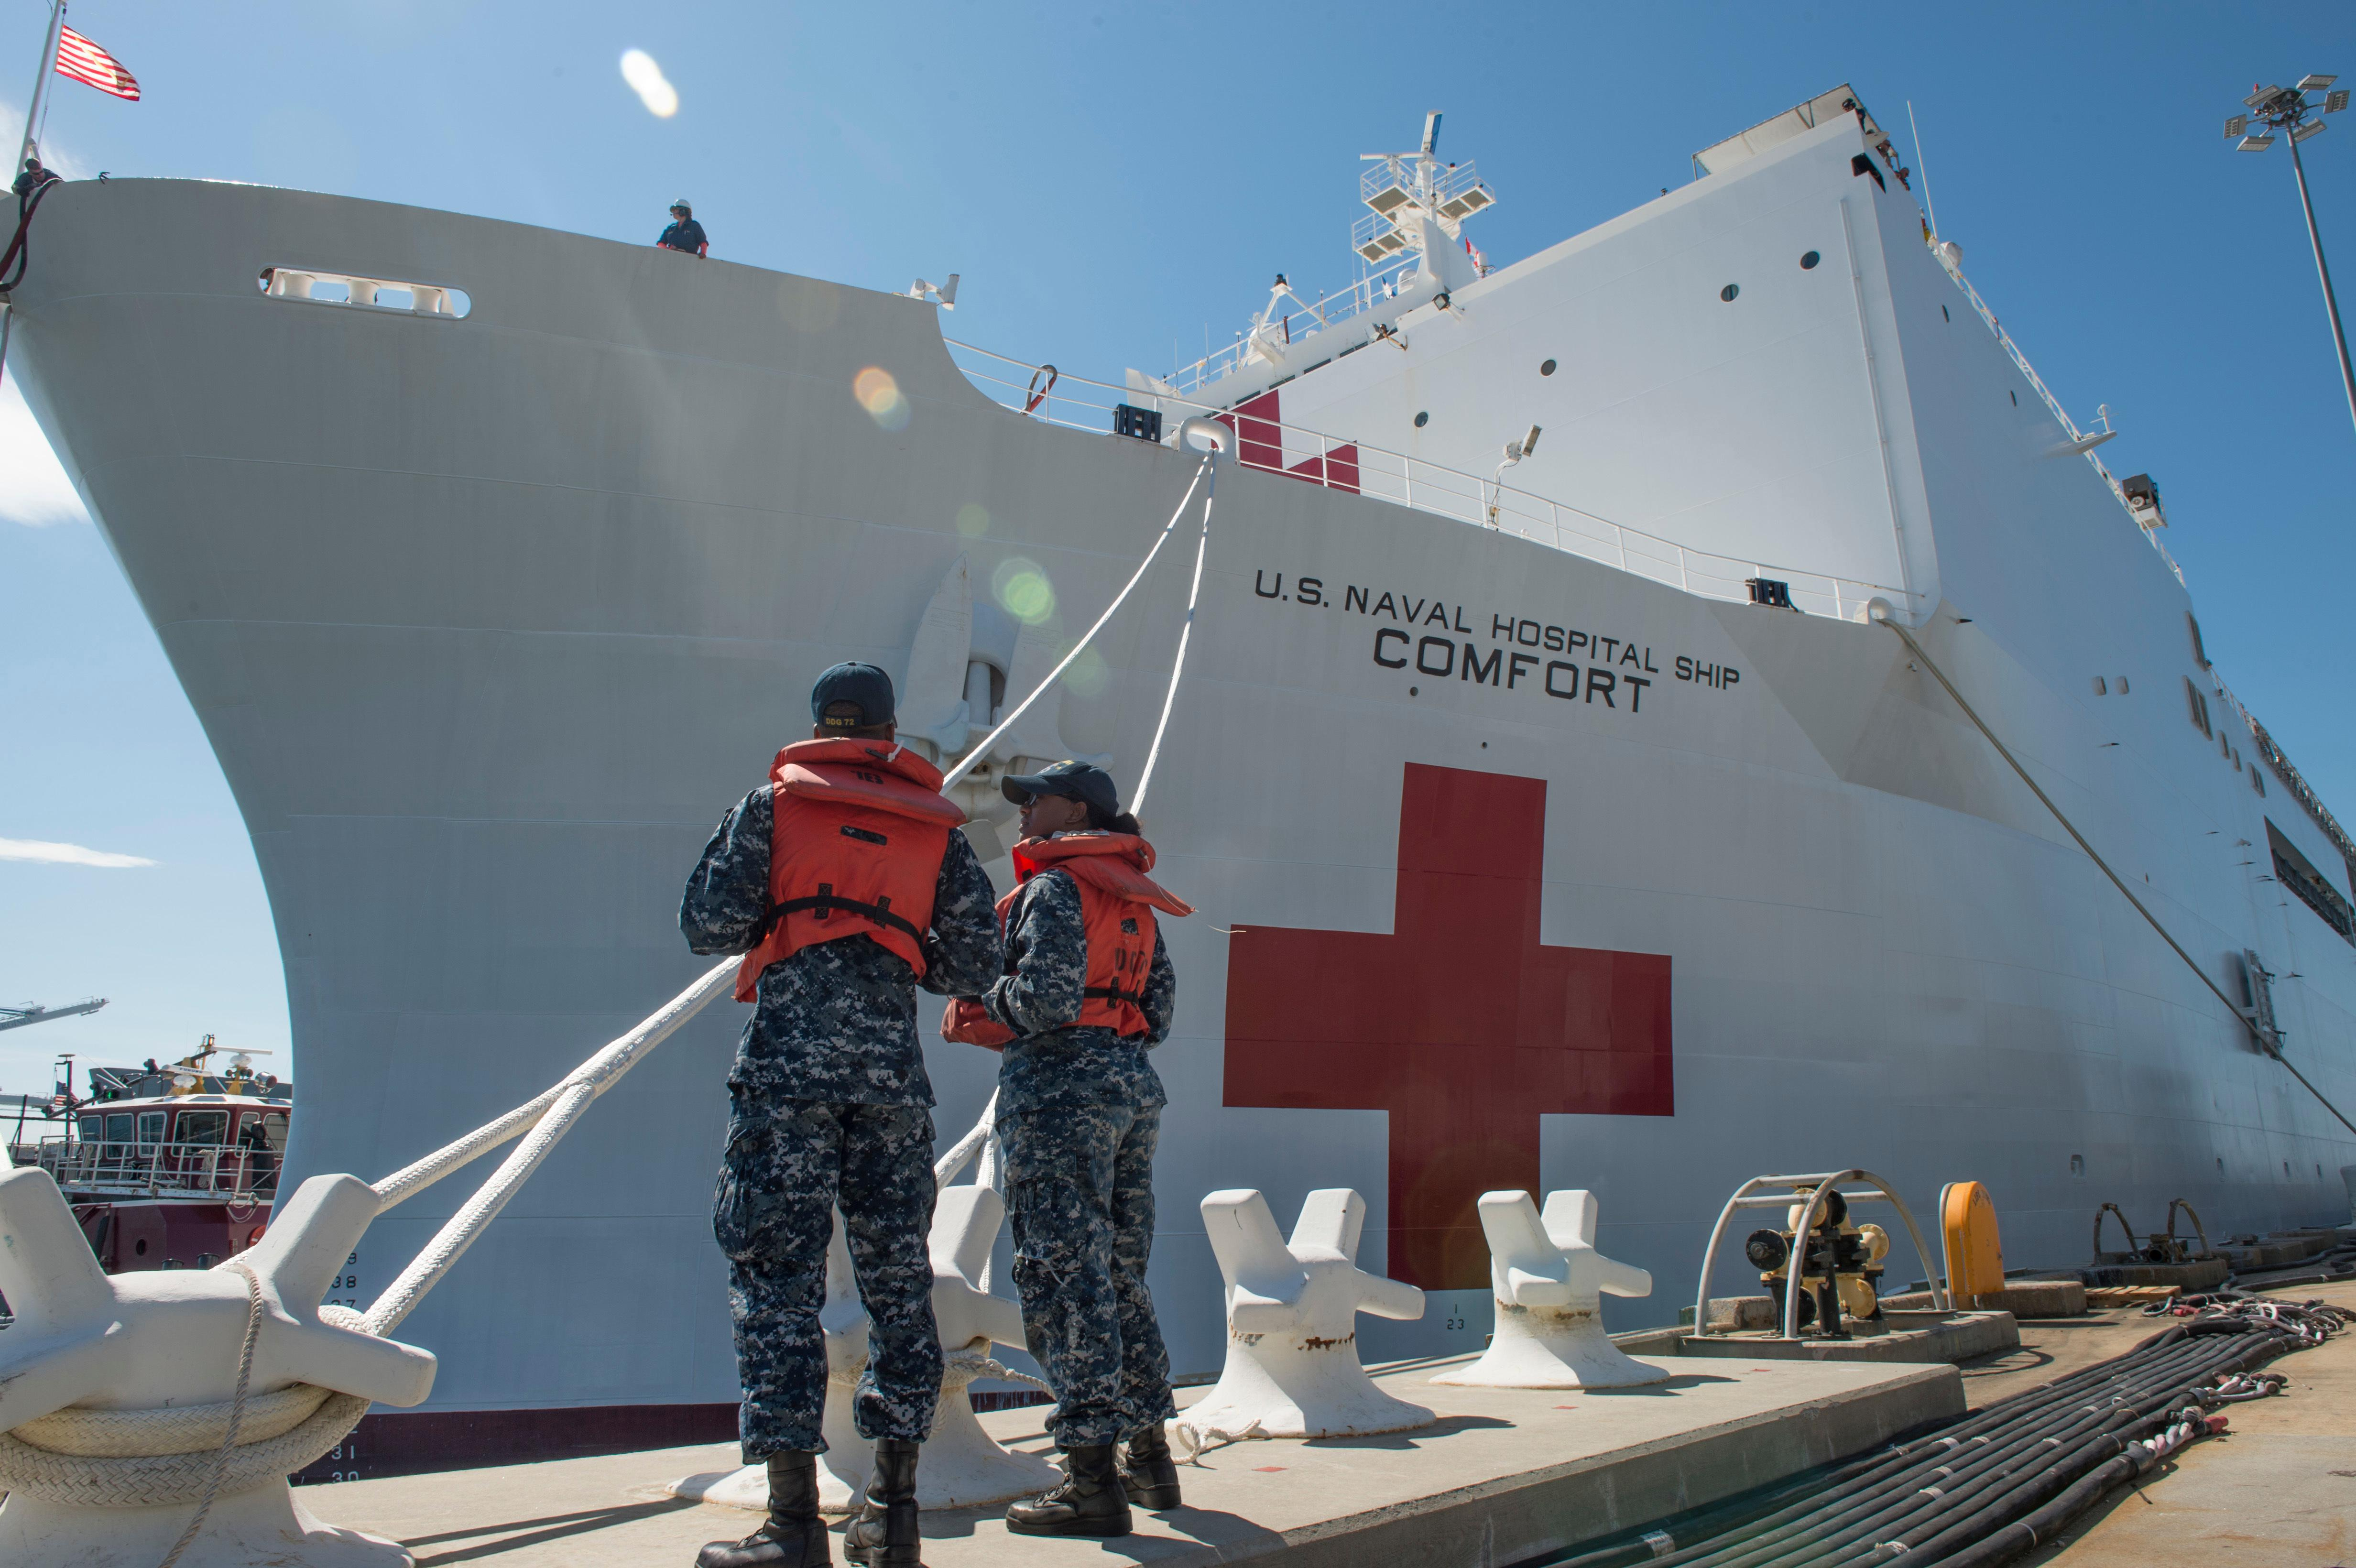 Boatswain's Mate 3rd Class Taryn Armington and Sonar Technician (Surface) Seaman Darian Joseph prepare to cast off mooring lines for the Military Sealift Command hospital ship USNS Comfort (T-AH 20) as the ship departs Naval Station Norfolk to support hurricane relief efforts in Puerto Rico  Friday, Sept. 29, 2017 in Norfolk, Va.. (MC3 Brittany Tobin/U.S. Navy via AP)